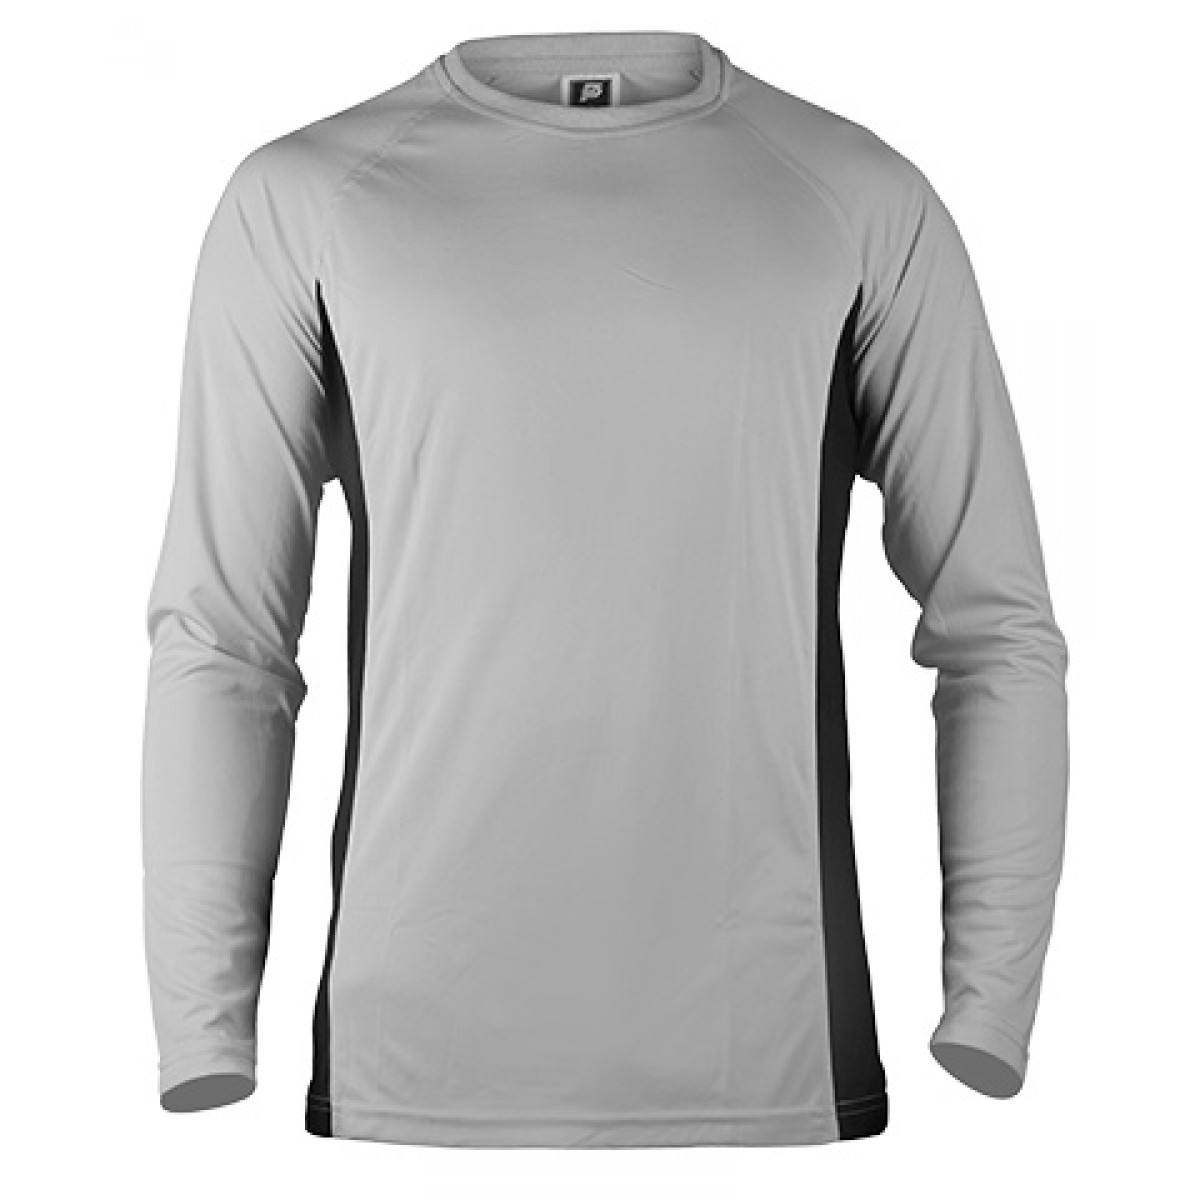 Long Sleeves Performance With Side Insert-Gray/Black-YL